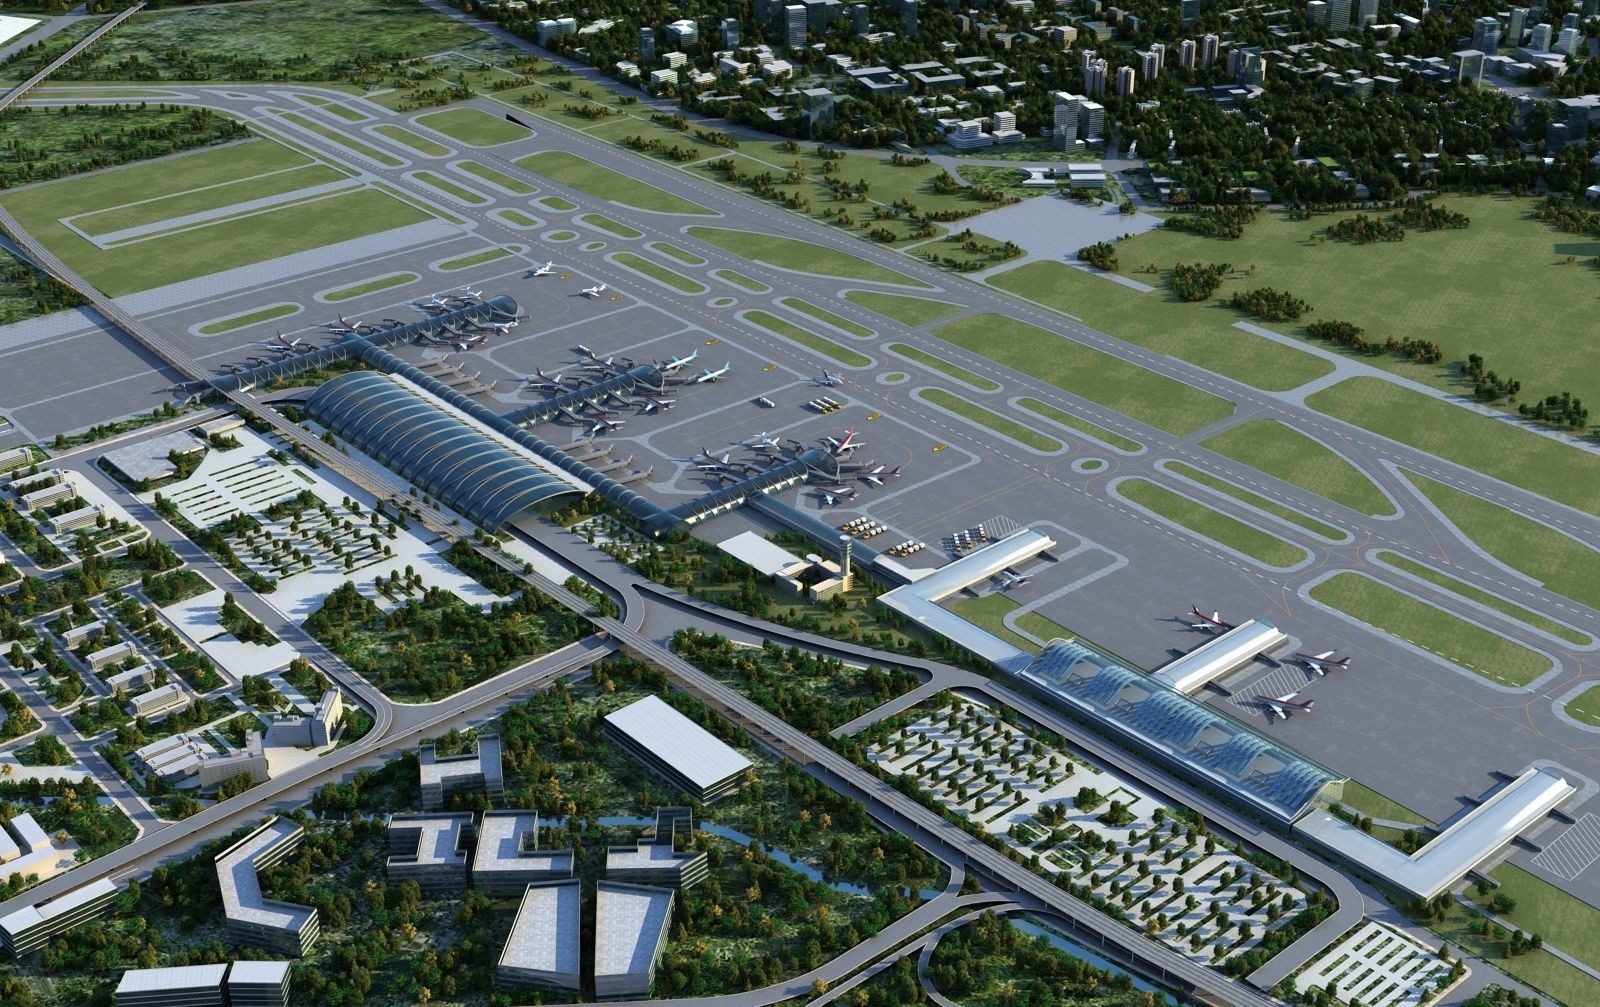 Airport Animated 01 by leenewman. Ready to render as